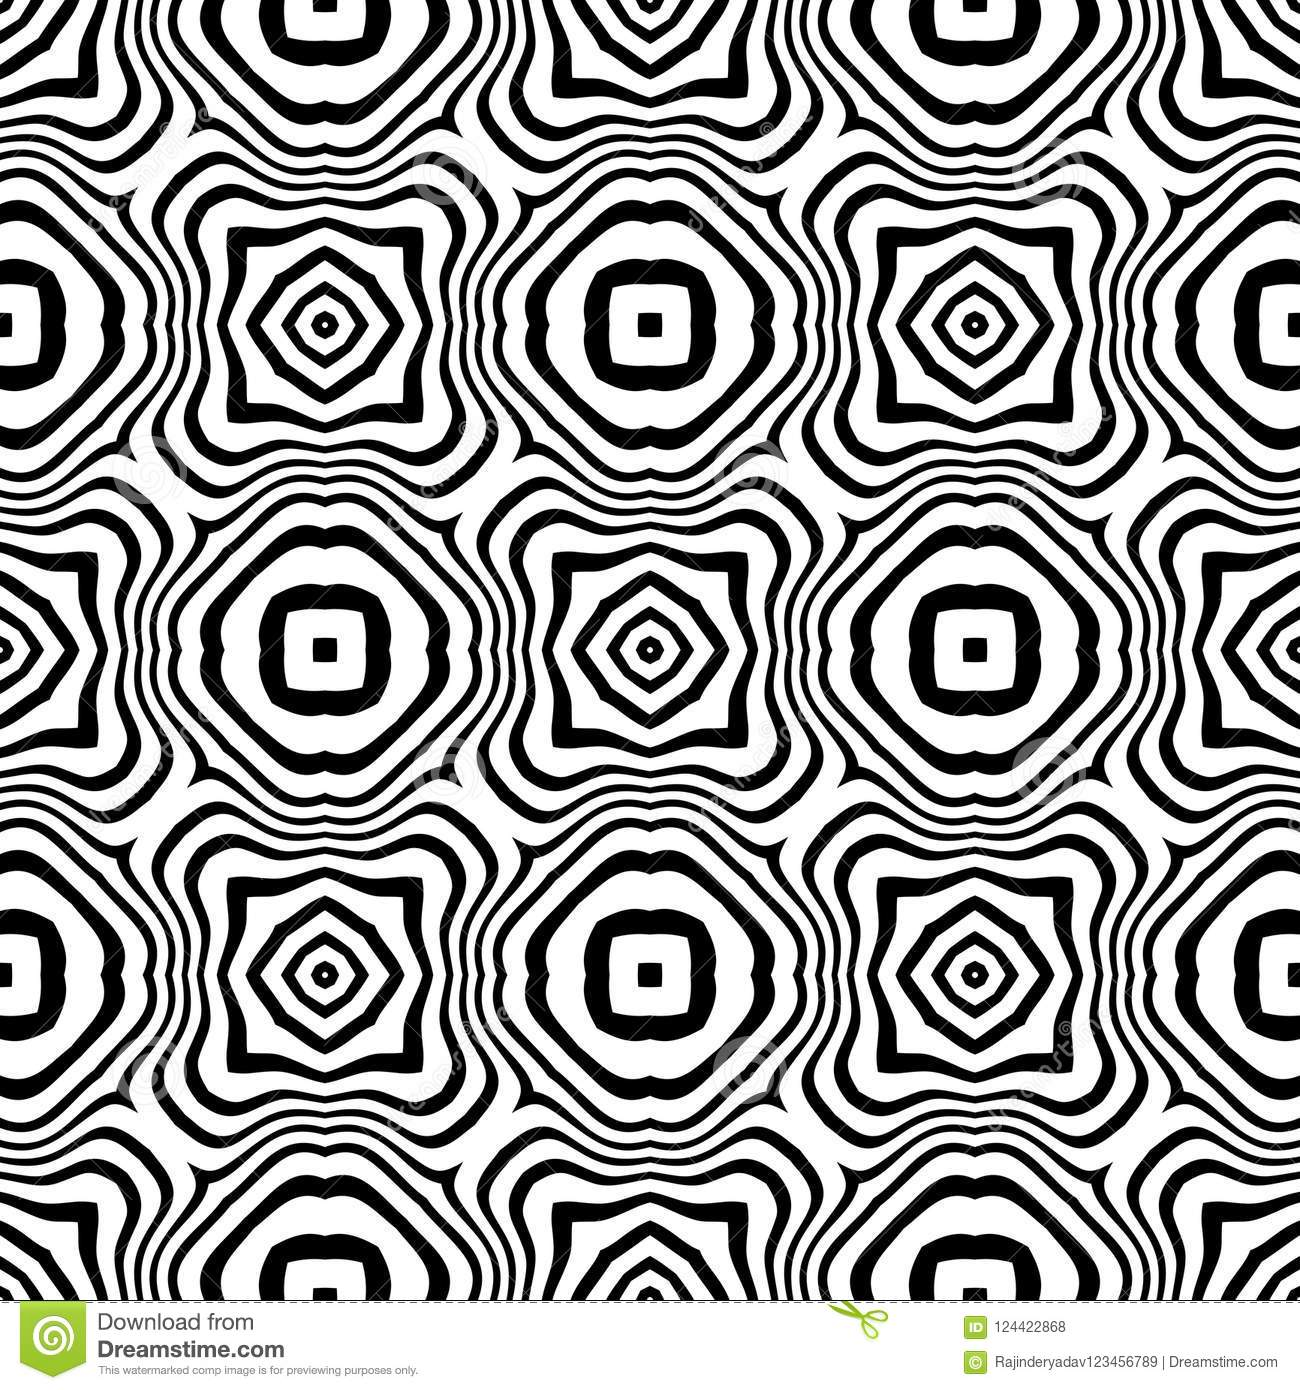 Vector seamless abstract pattern black and white. abstract background wallpaper.